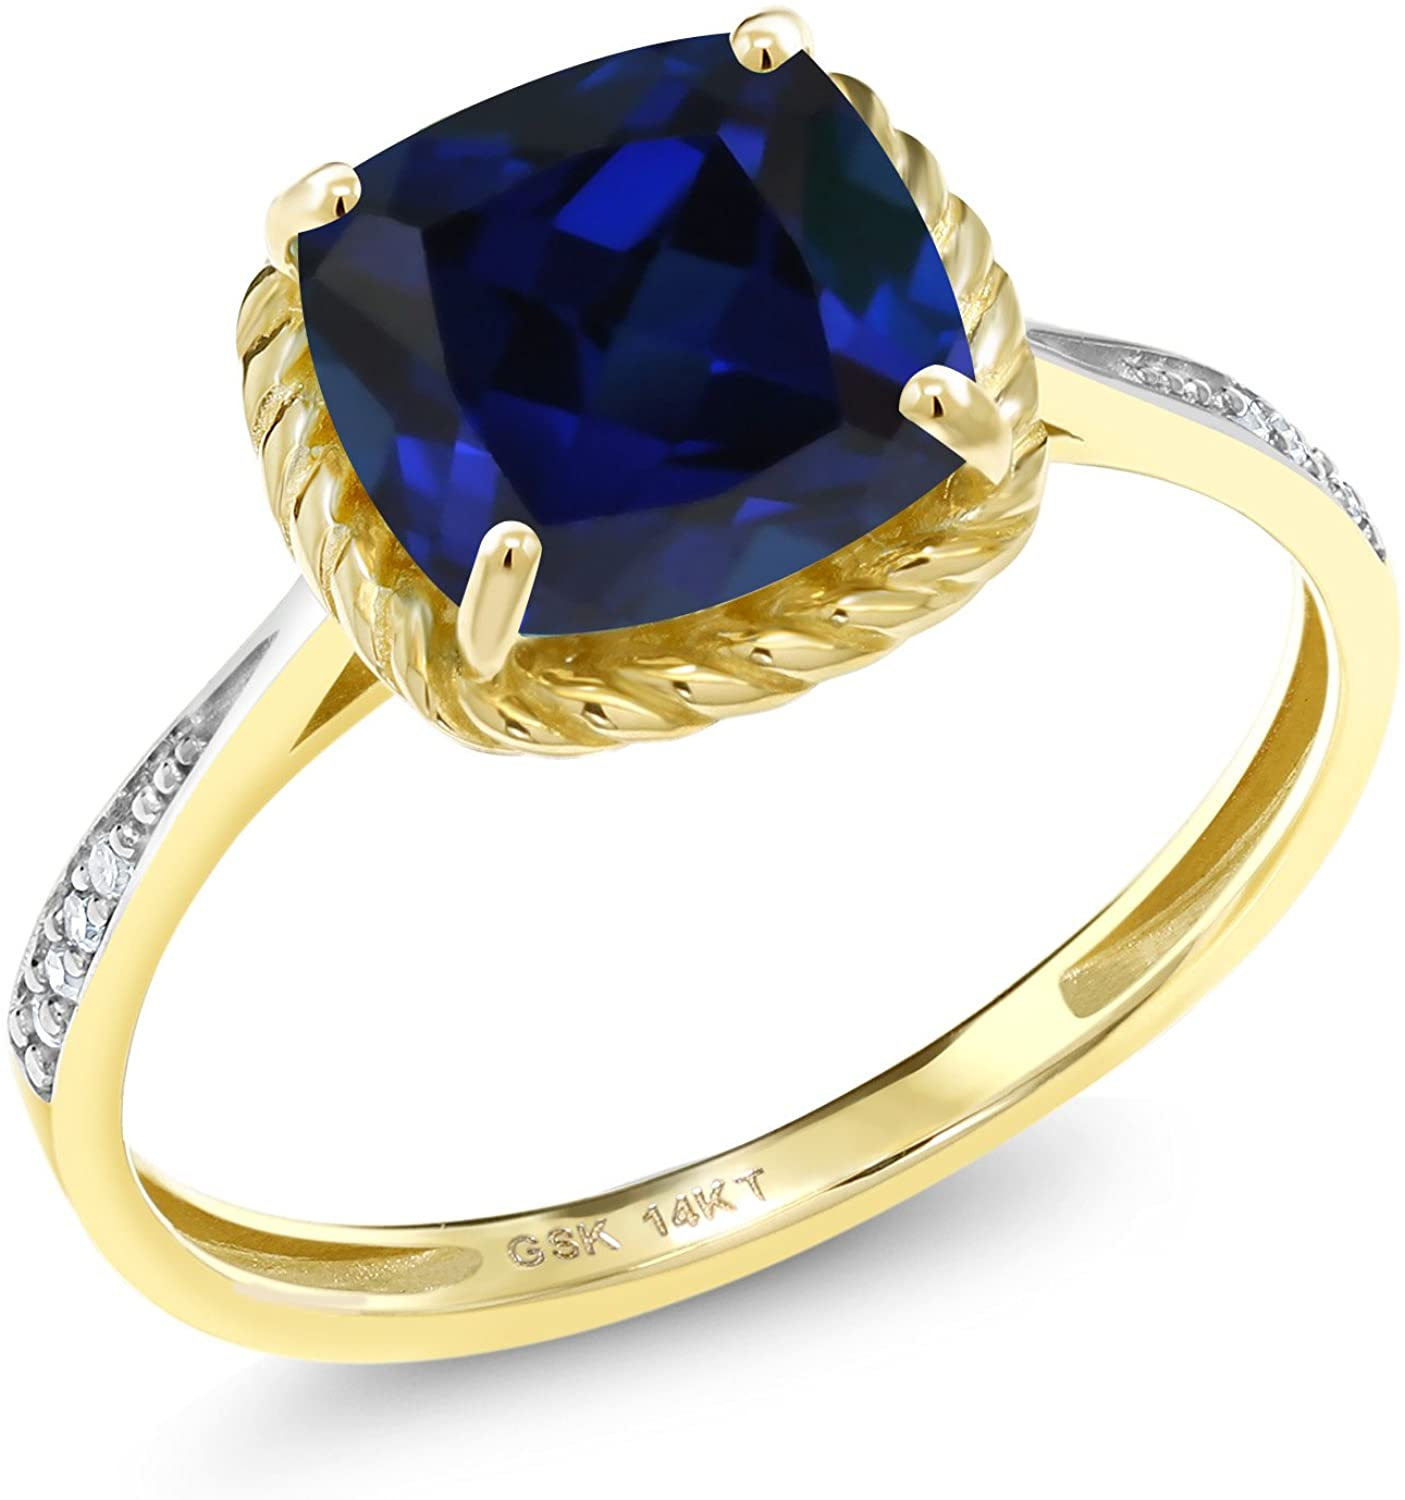 Gem Stone King 14K Yellow Gold Blue Created Sapphire and White Diamond Women's Engagement Ring (2.56 Ct Cushion Cut)